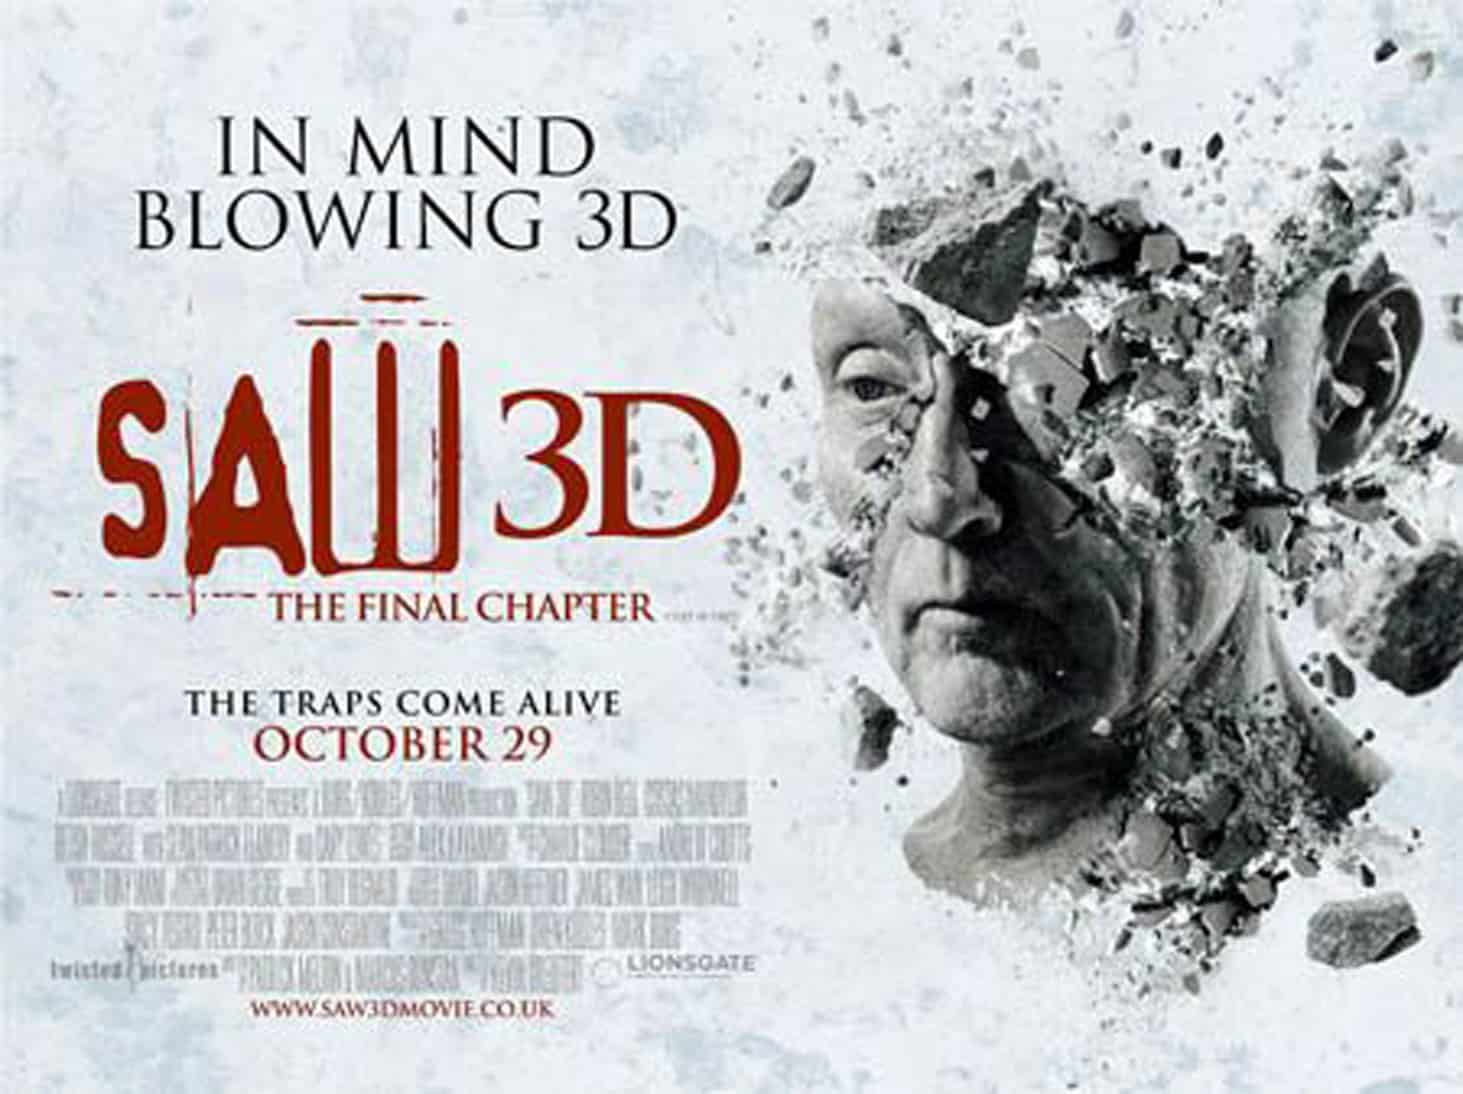 Saw 3d the final chapter blueprint review malvernweather Image collections